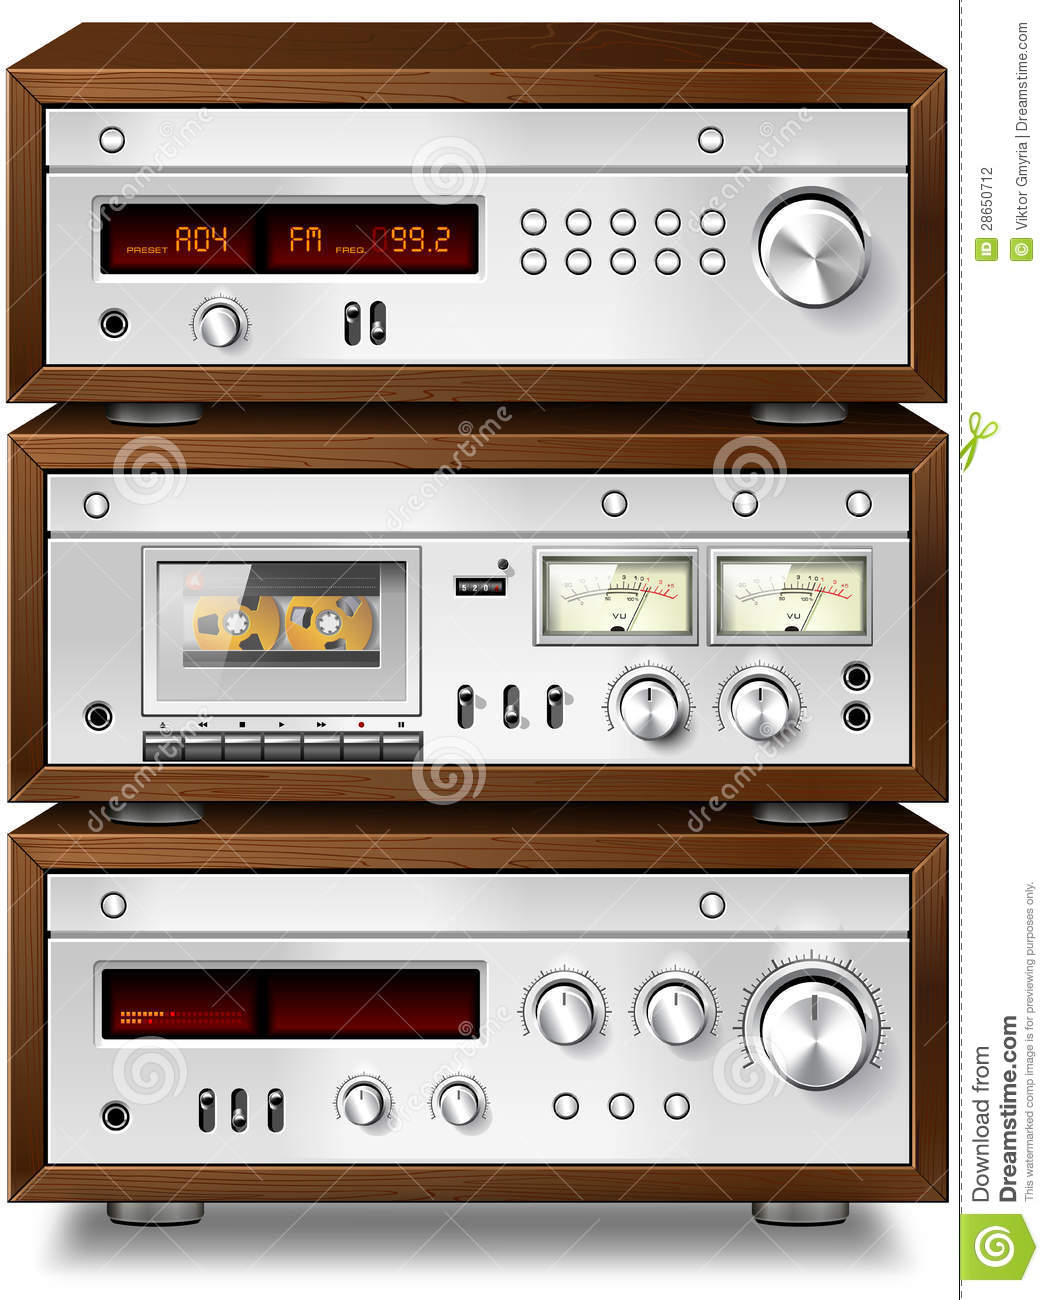 stereo cassette deck with amplifier and tuner stock. Black Bedroom Furniture Sets. Home Design Ideas